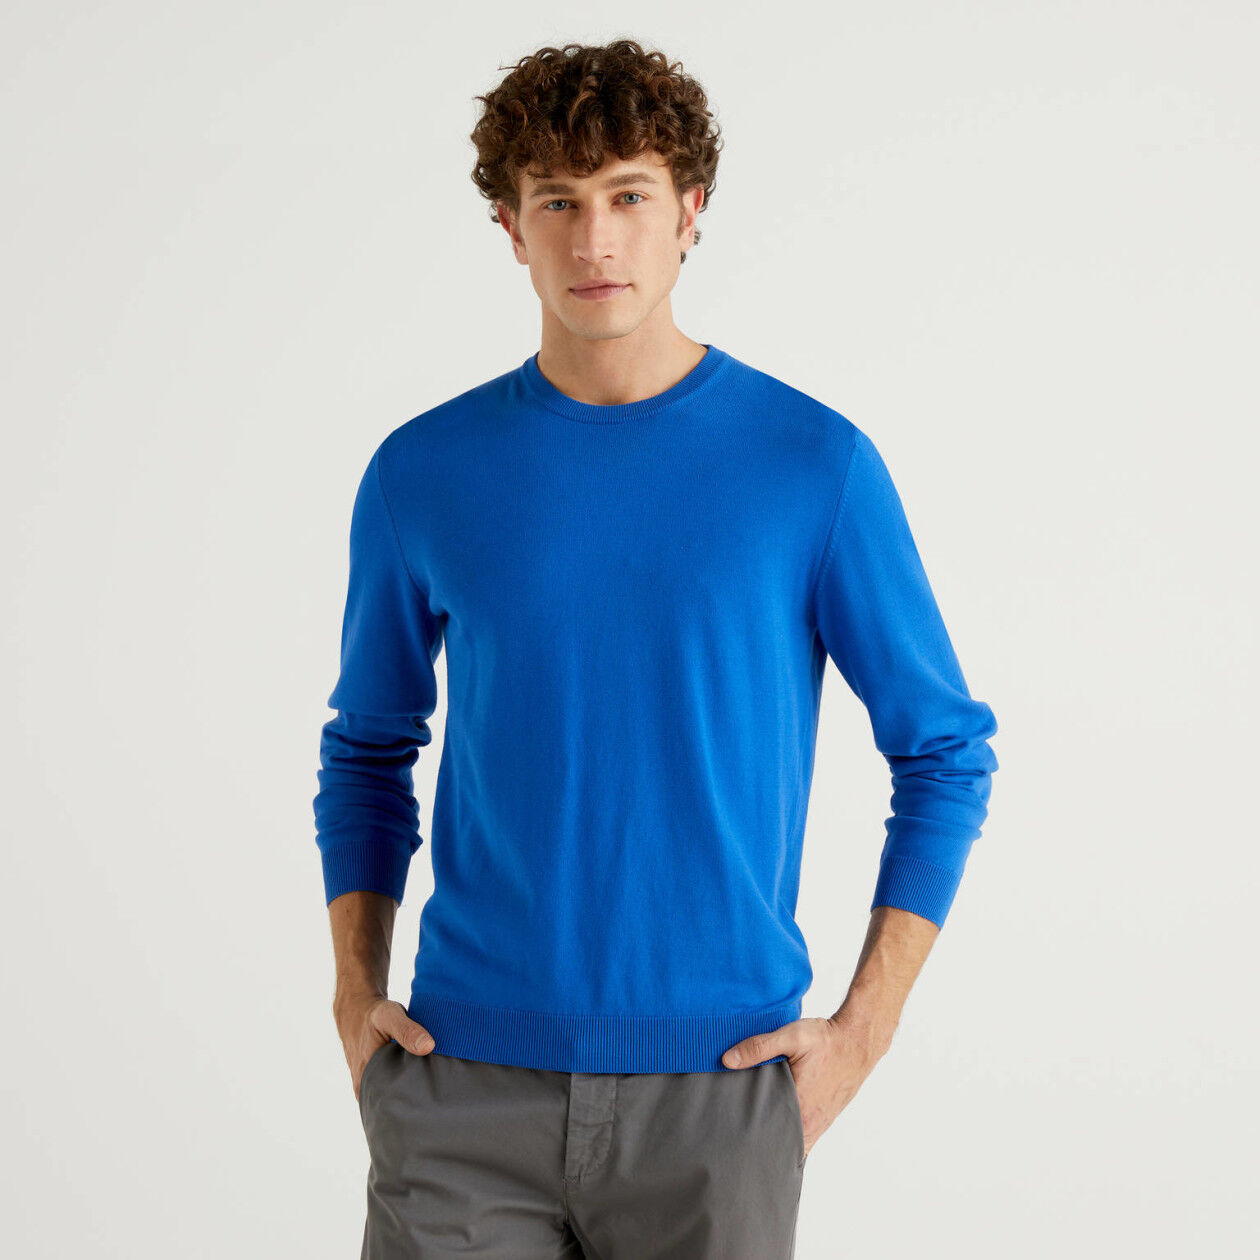 100% cotton crew neck sweater